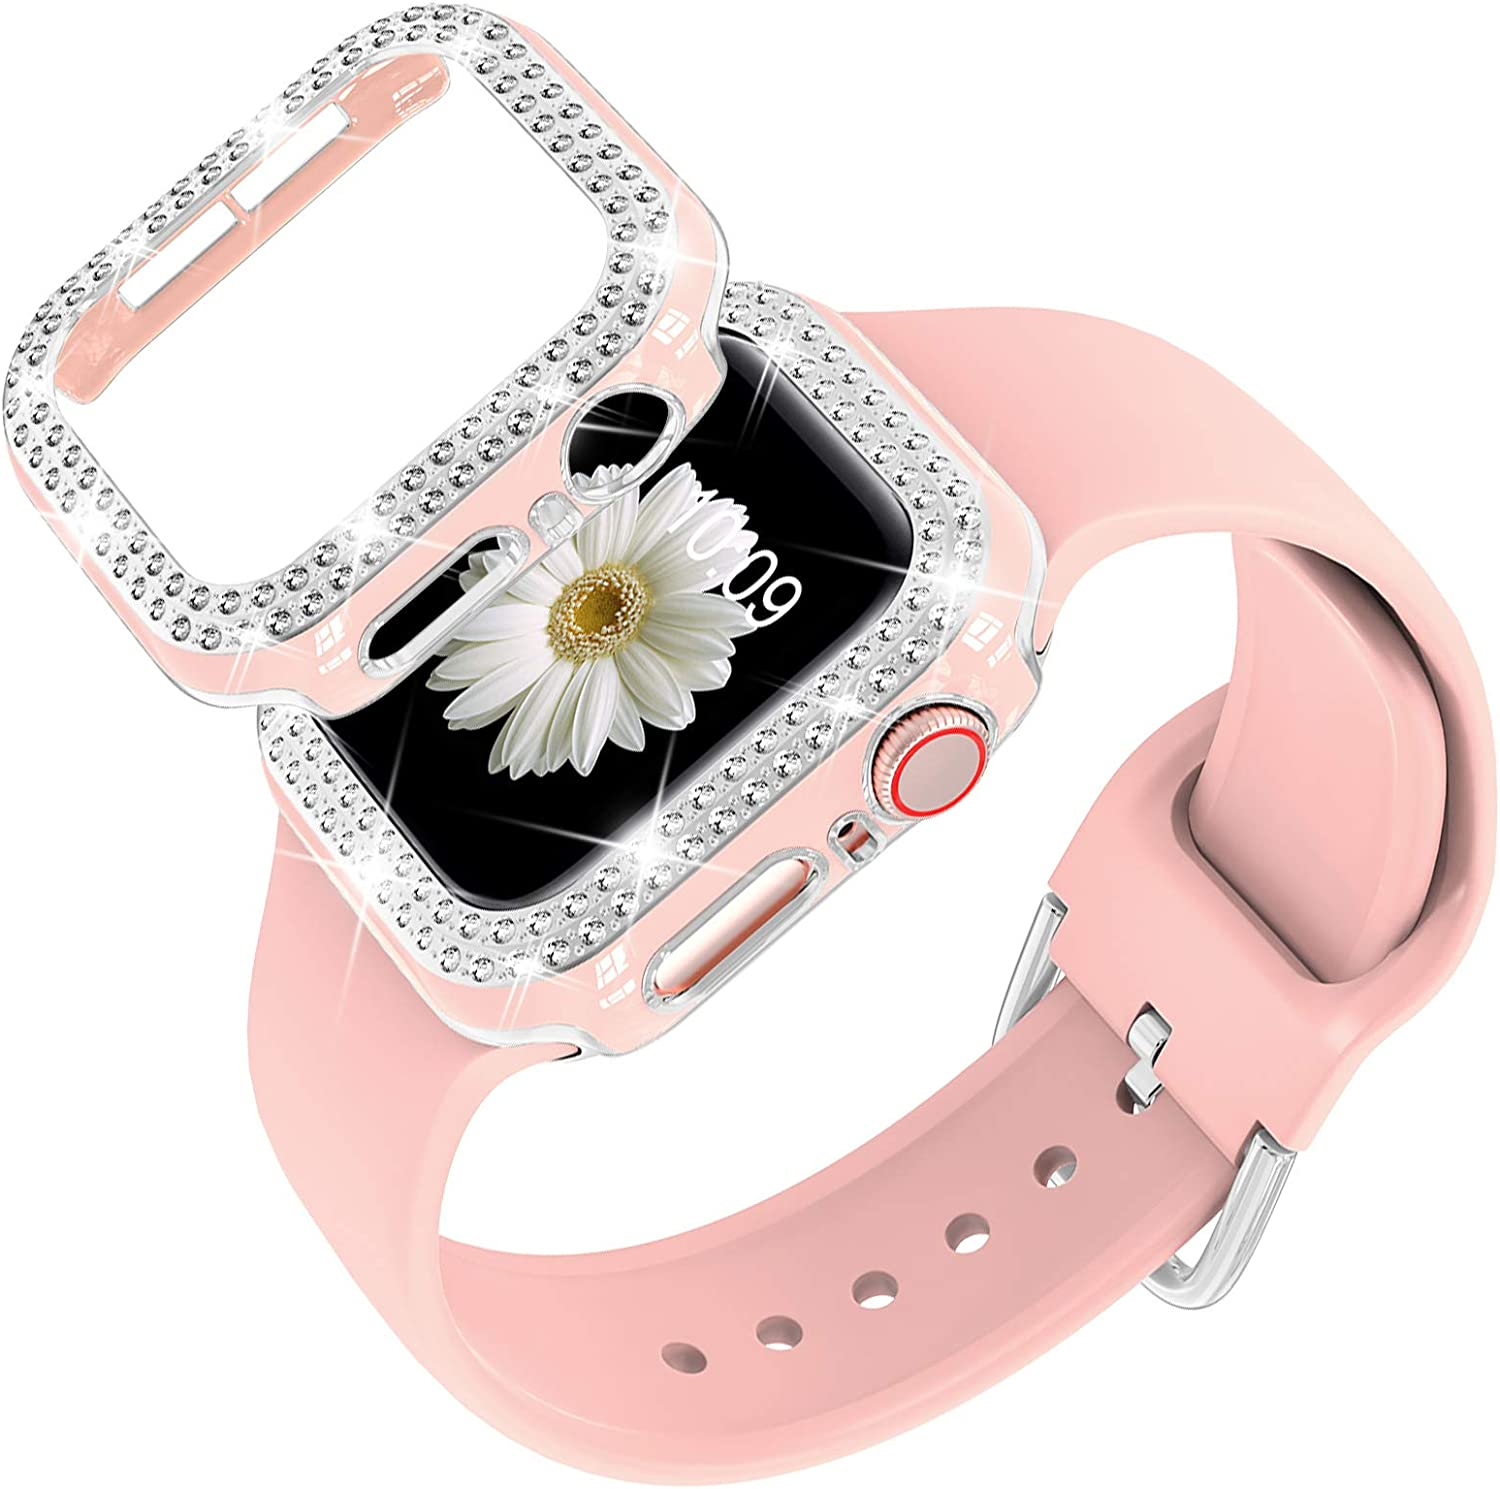 DABAOZA Compatible for Apple Watch Band 40mm 44mm with Glitter Bumper Case, Women Silicone Soft Comfortable Adjustable Strap with Buckle for iWatch SE Series 6/5/4